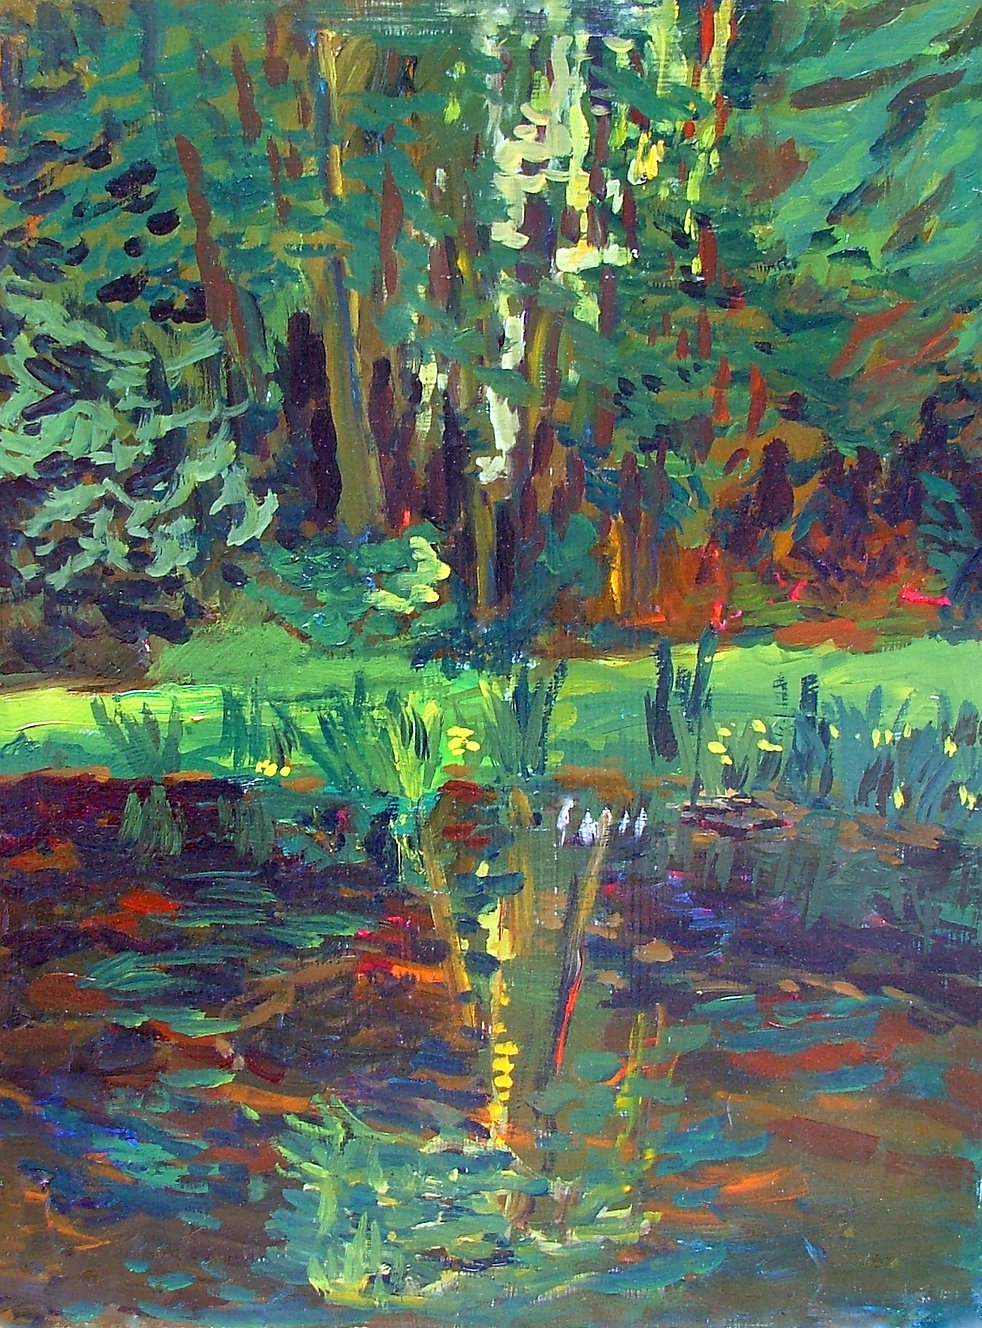 Sportsmans Club Pond | Oil Painting | Nan Leiter | Artist, Painter